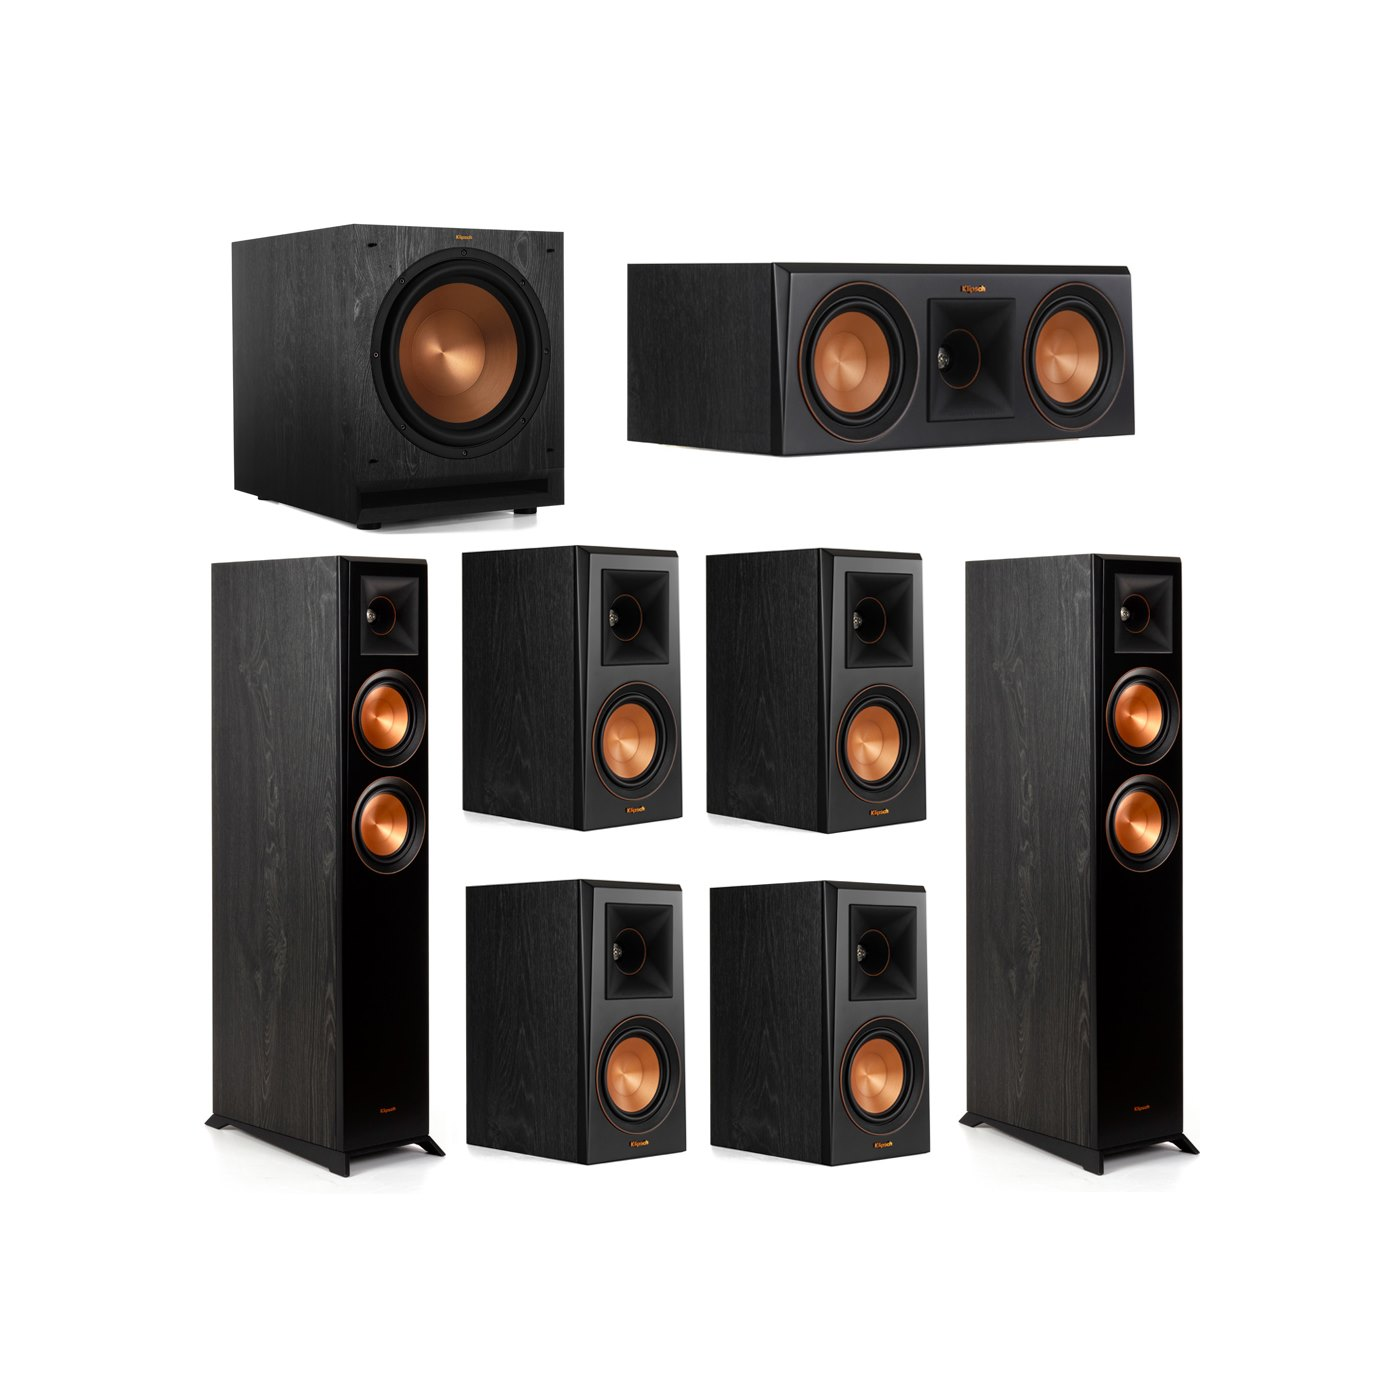 Klipsch 7.1 System with 2 RP-5000F Floorstanding Speakers, 1 Klipsch RP-500C Center Speaker, 4 Klipsch RP-500M Surround Speakers, 1 Klipsch SPL-120 Subwoofer